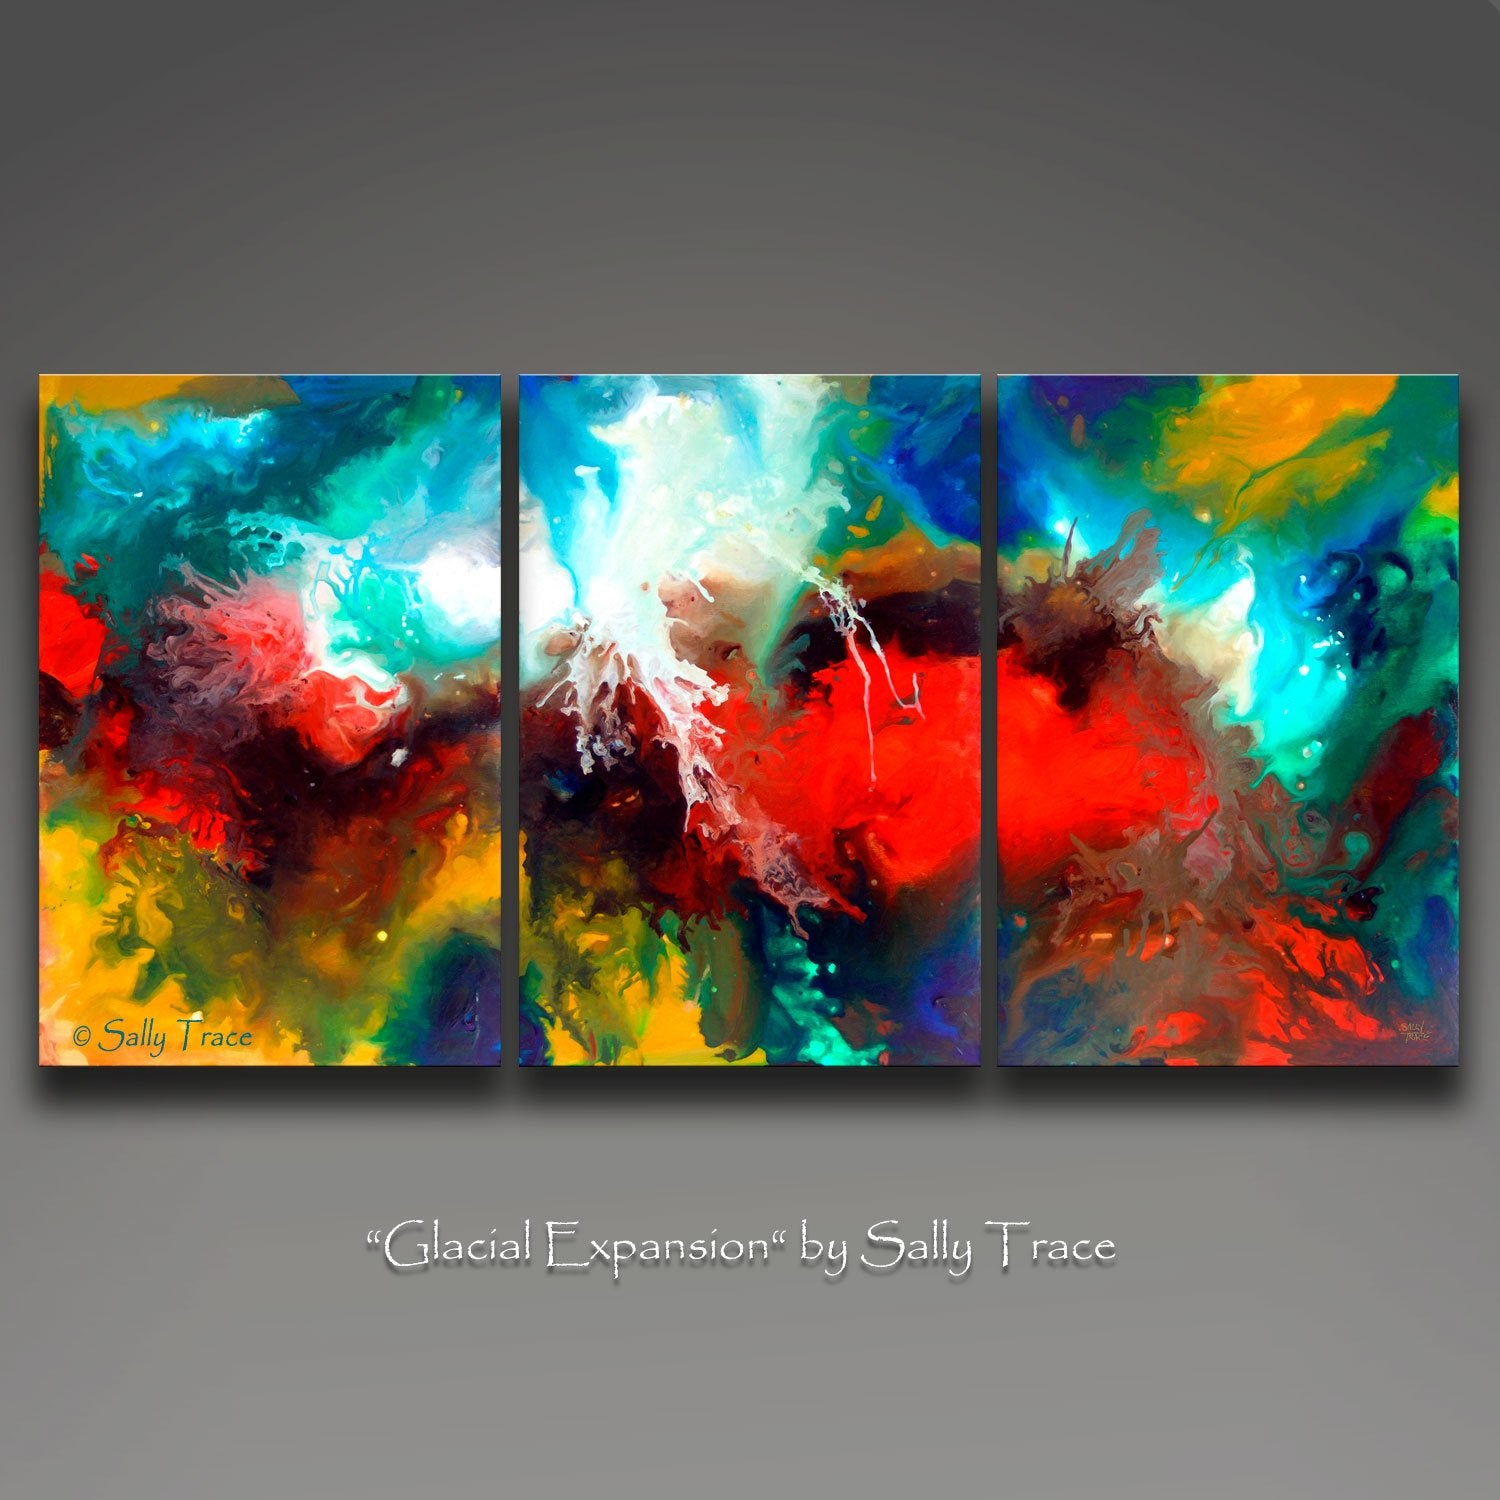 sally trace giclee prints with multiple canvases